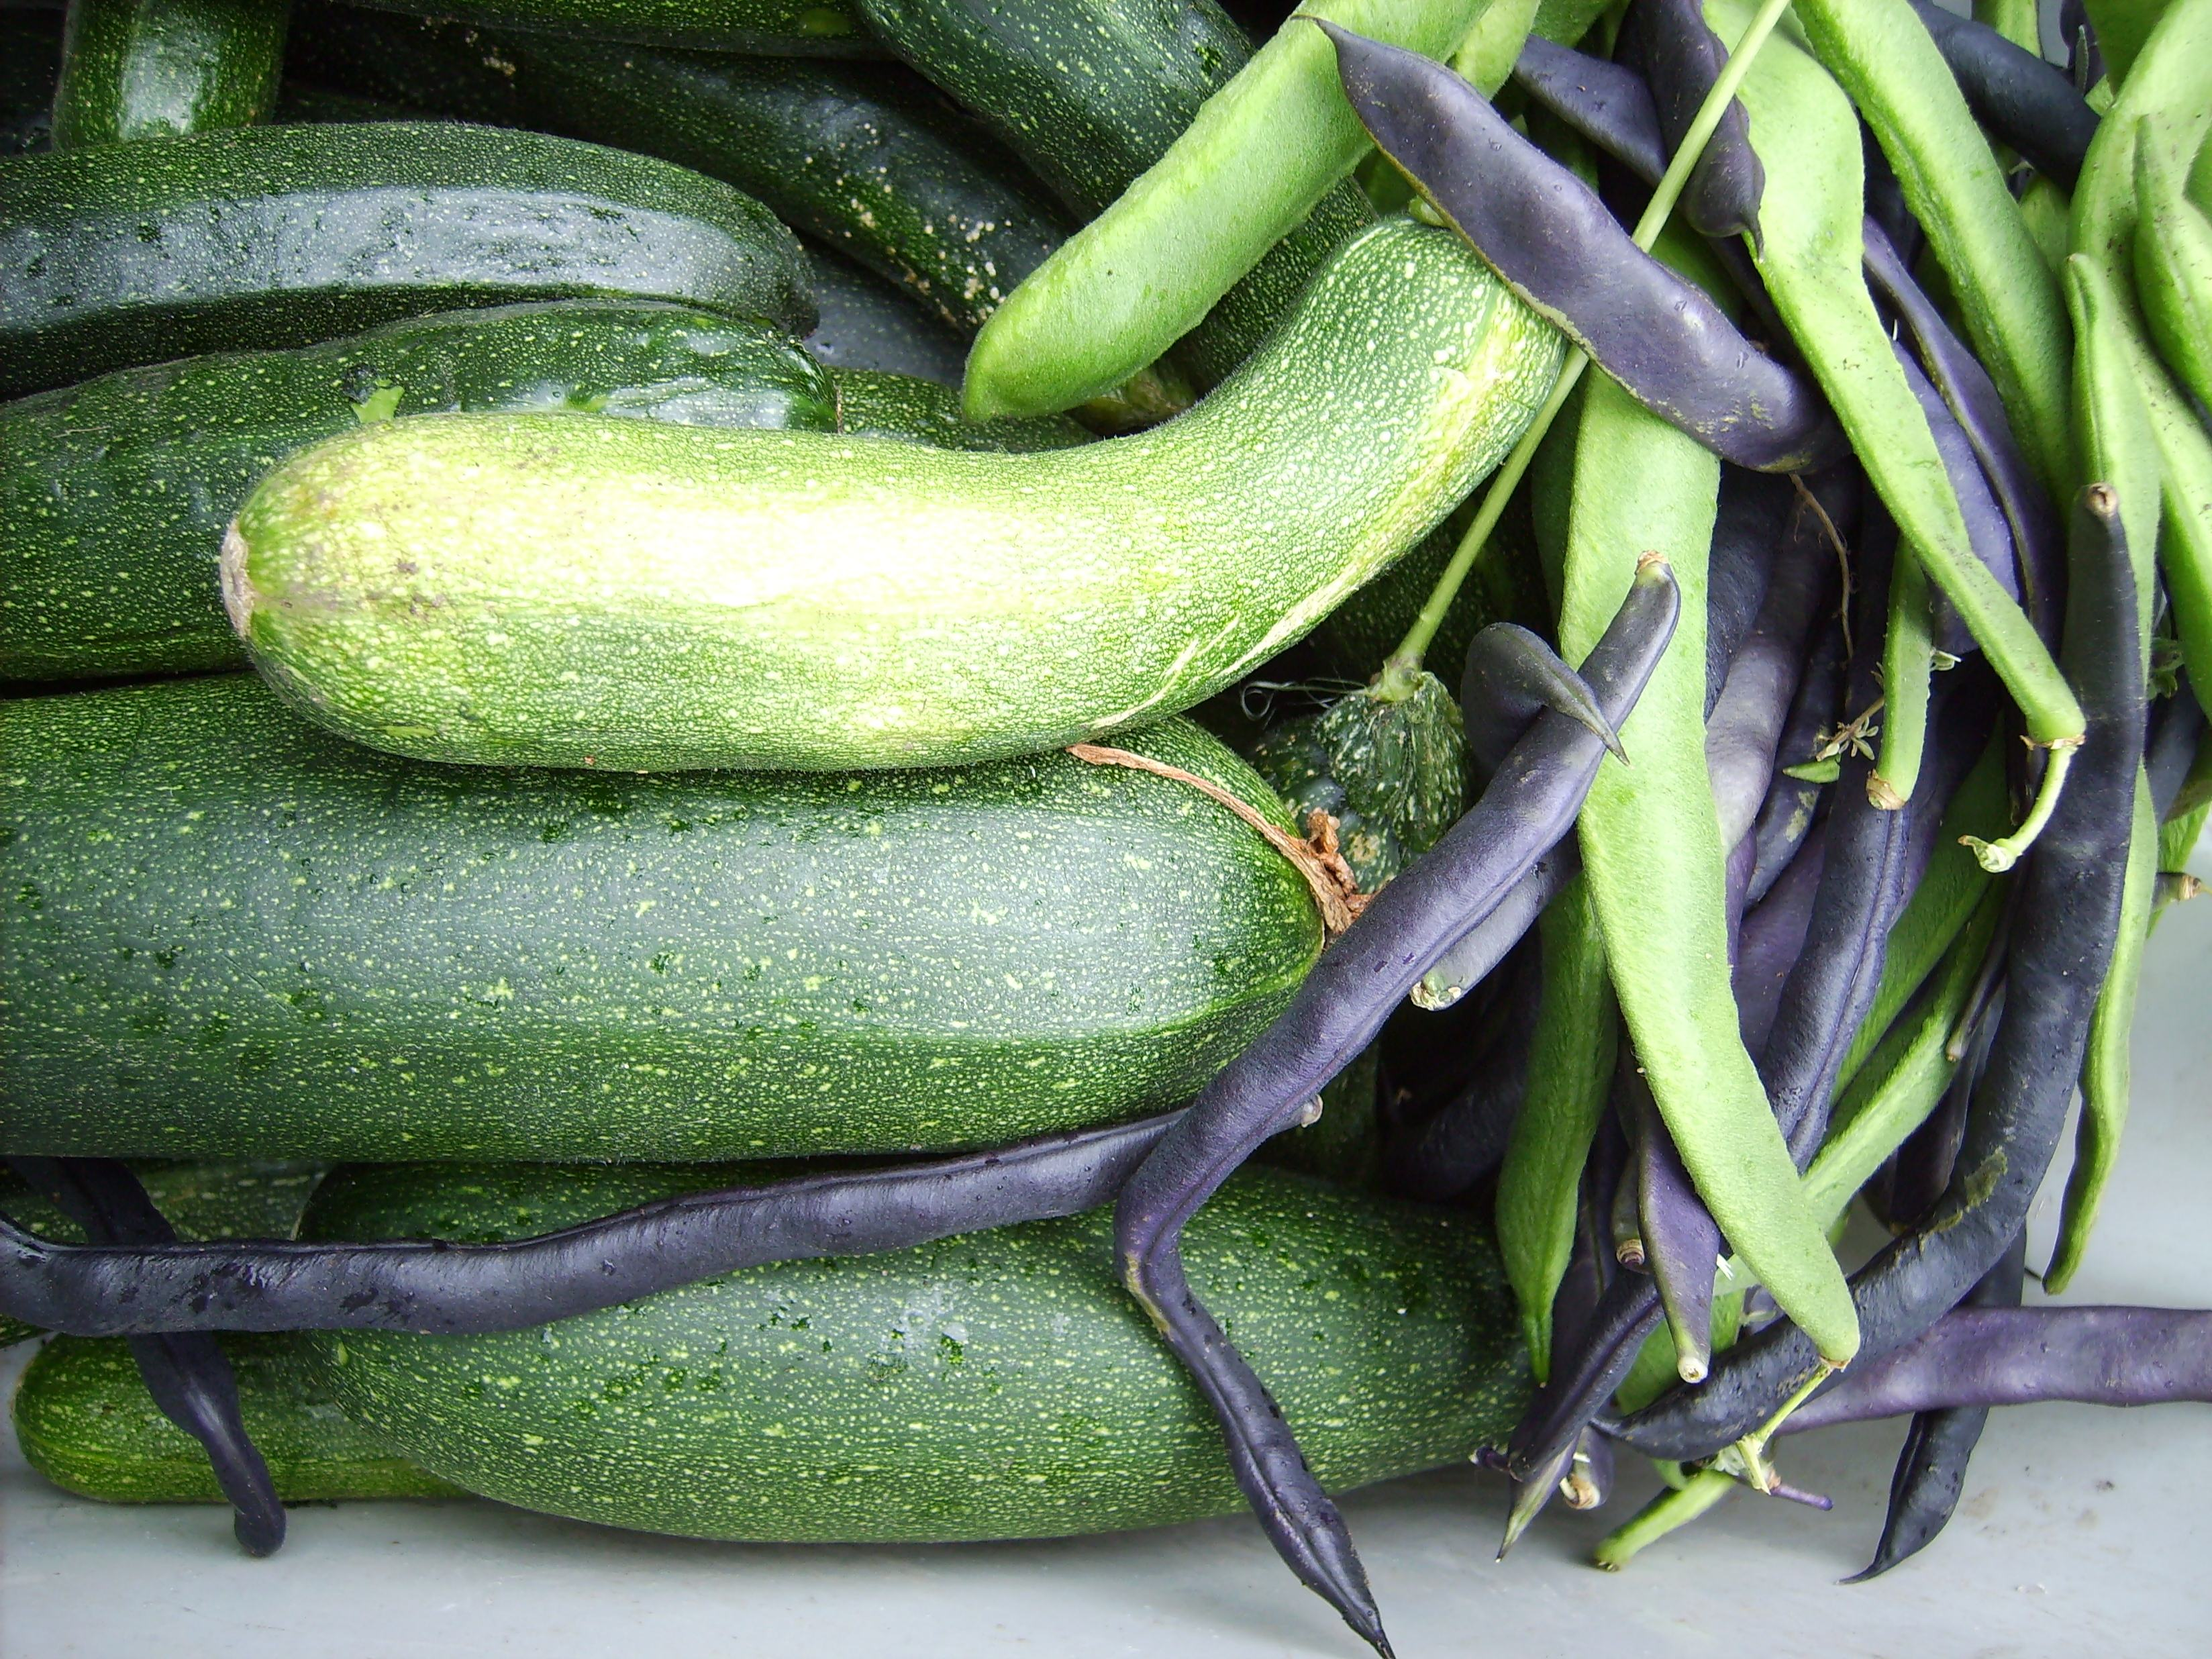 Courgettes and beans close